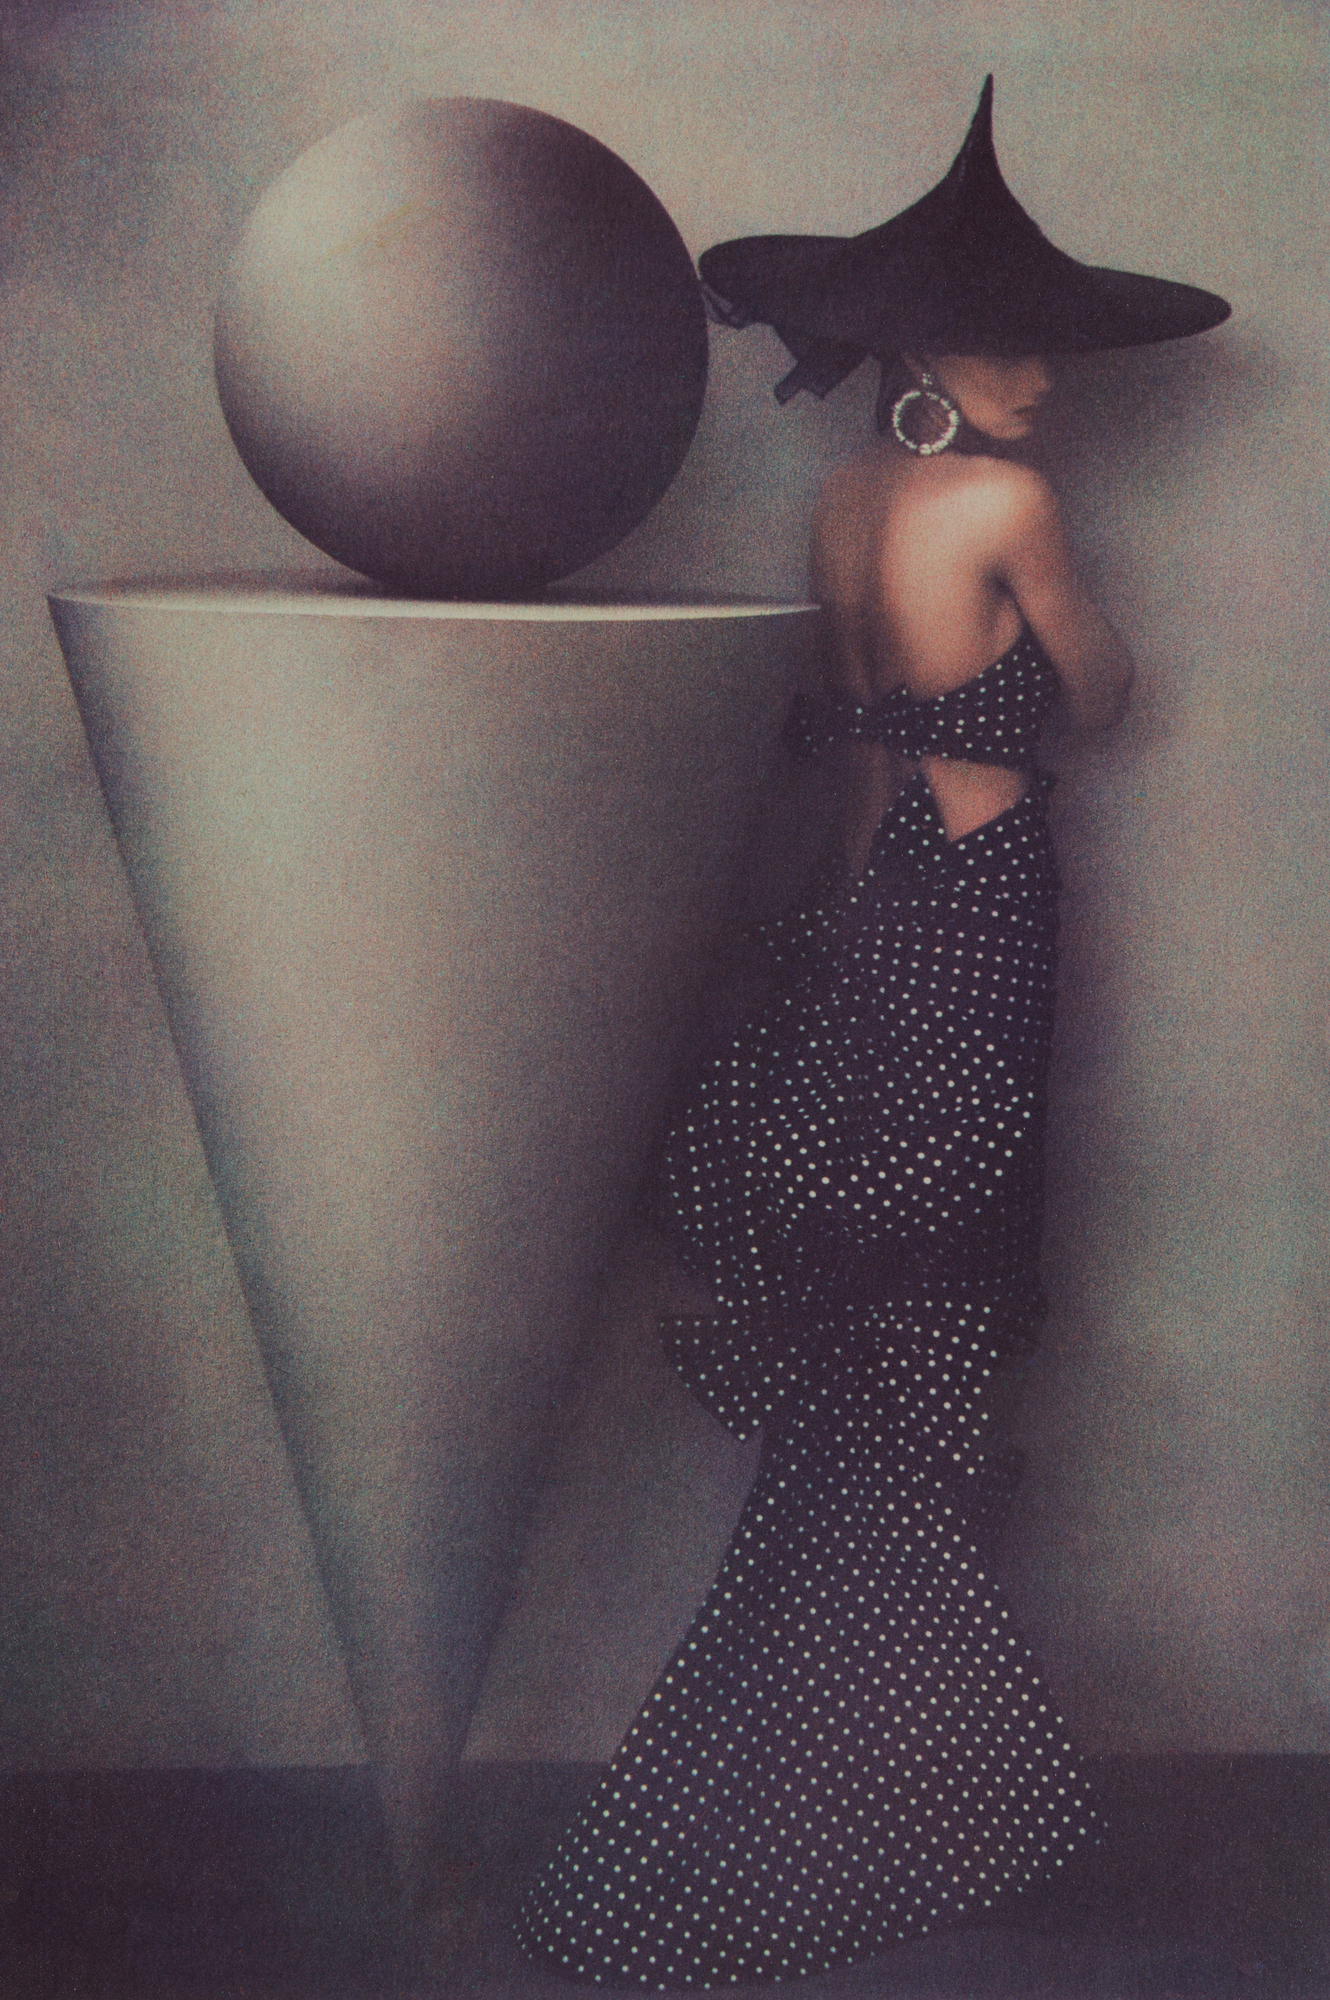 SHEILA METZNER (American, born 1939),  Uma in Dress by Patou , 1986. Pigment print, 62.7 × 41.8 cm (24 11⁄16 × 16 7⁄16 in.) Los Angeles, J. Paul Getty Museum. Purchased with funds provided by the Photographs Council, 2016.90. © Sheila Metzner